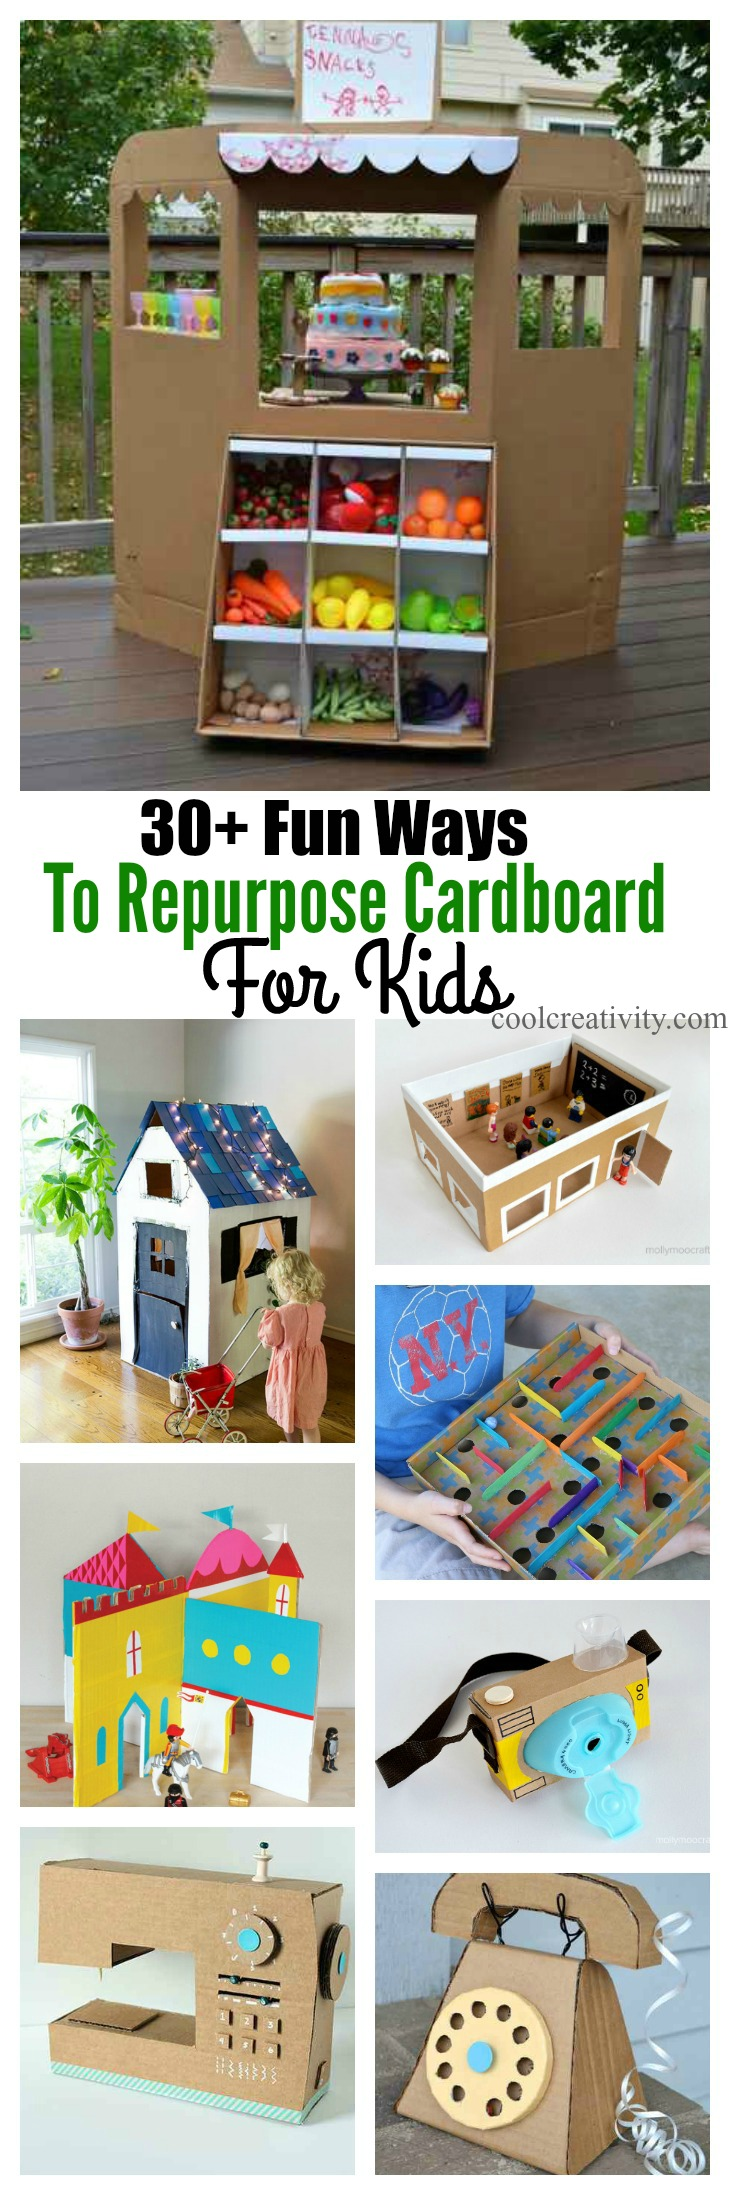 30+ Fun Ways To Repurpose Cardboard For Kids